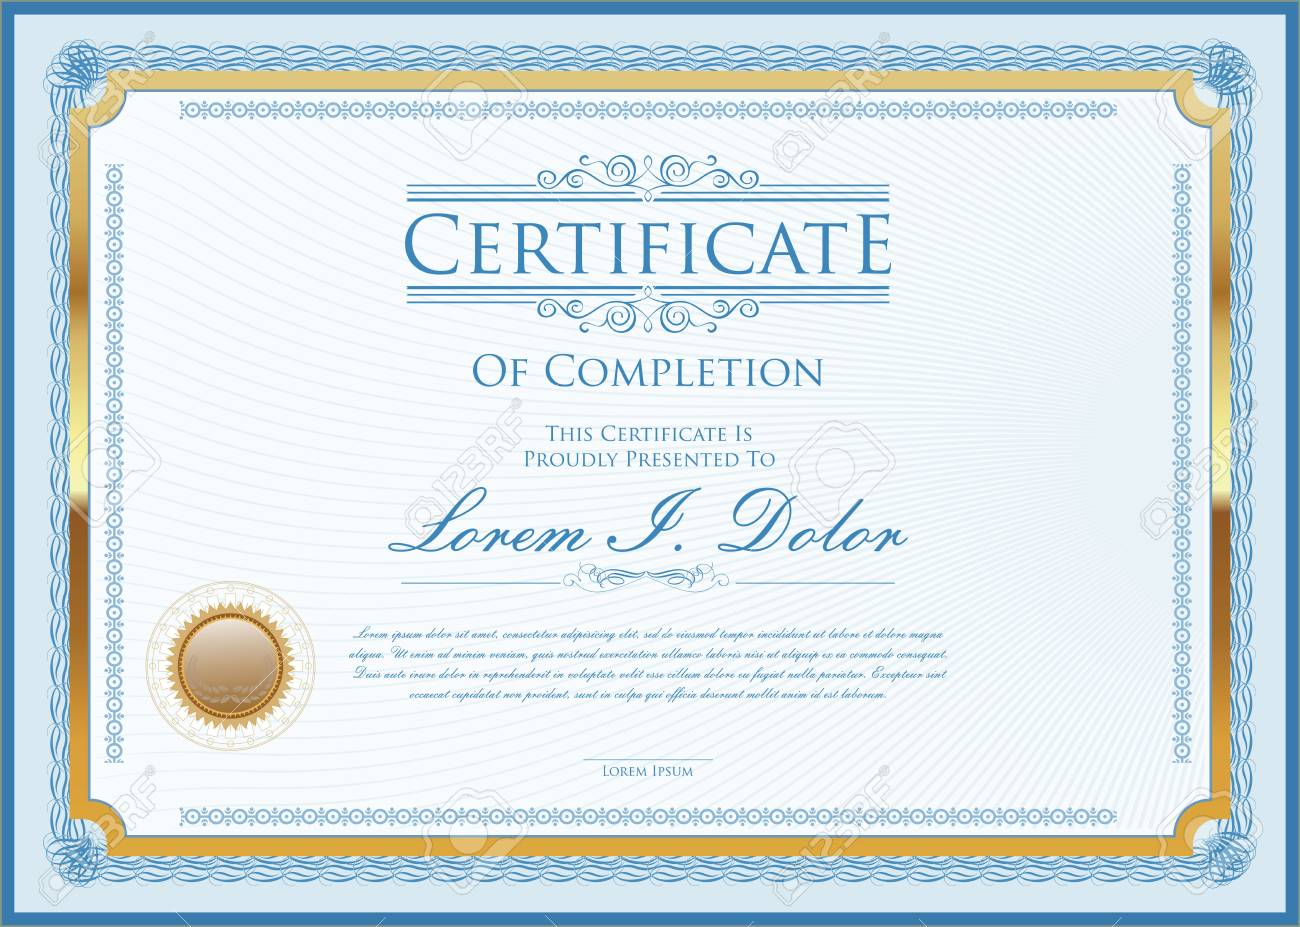 Free vector certificate templates choice image templates example vector certificate template choice image templates example free vector certificate template choice image templates example free xflitez Gallery